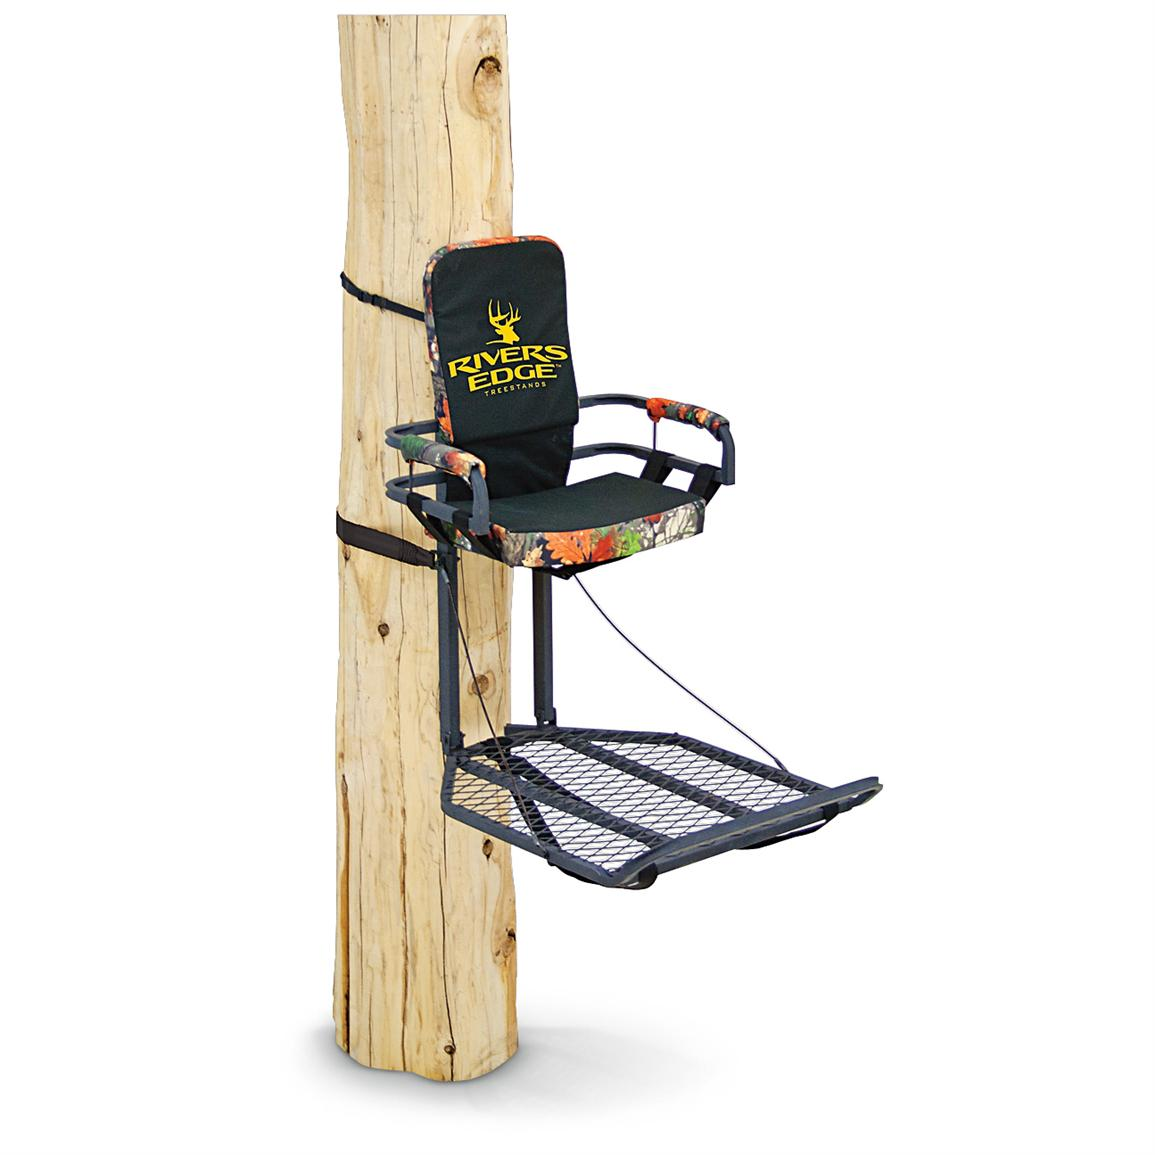 Rivers Edge® Extra-large Platform Stand / Footrest Lounger Tree Stand, Gray / Camo